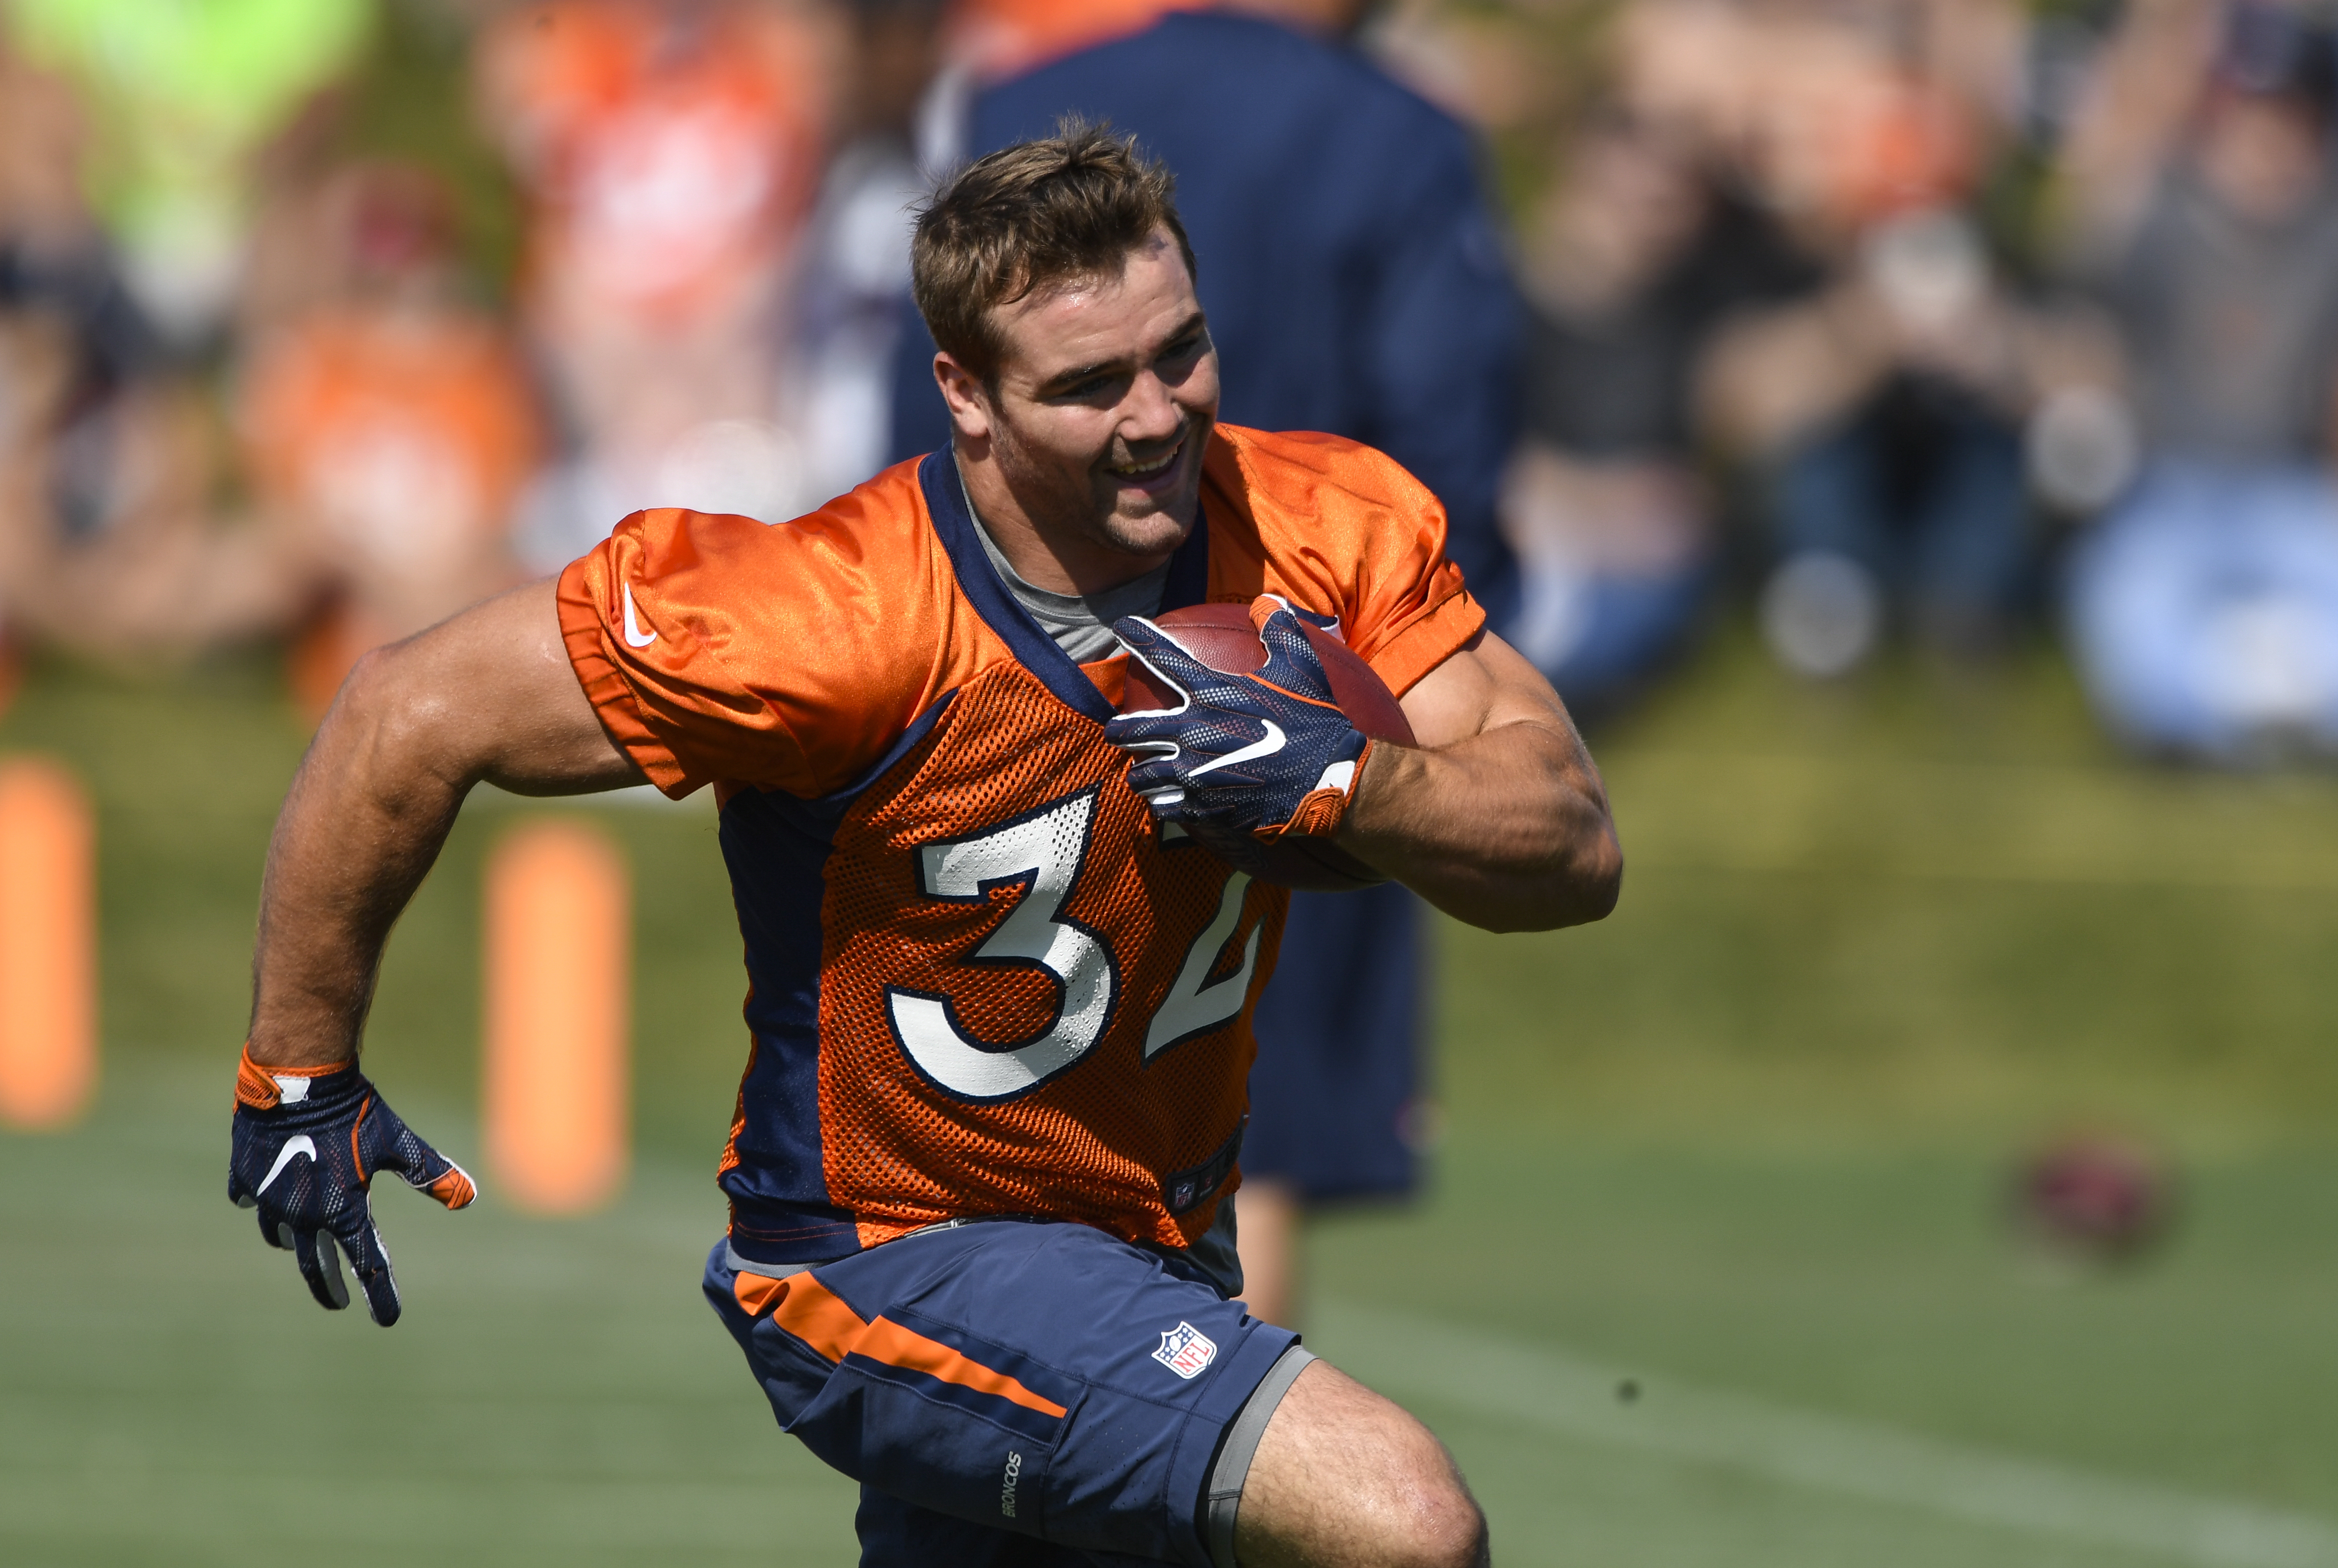 Broncos' Andy Janovich scores 28-yard touchdown on first career touch (Video)